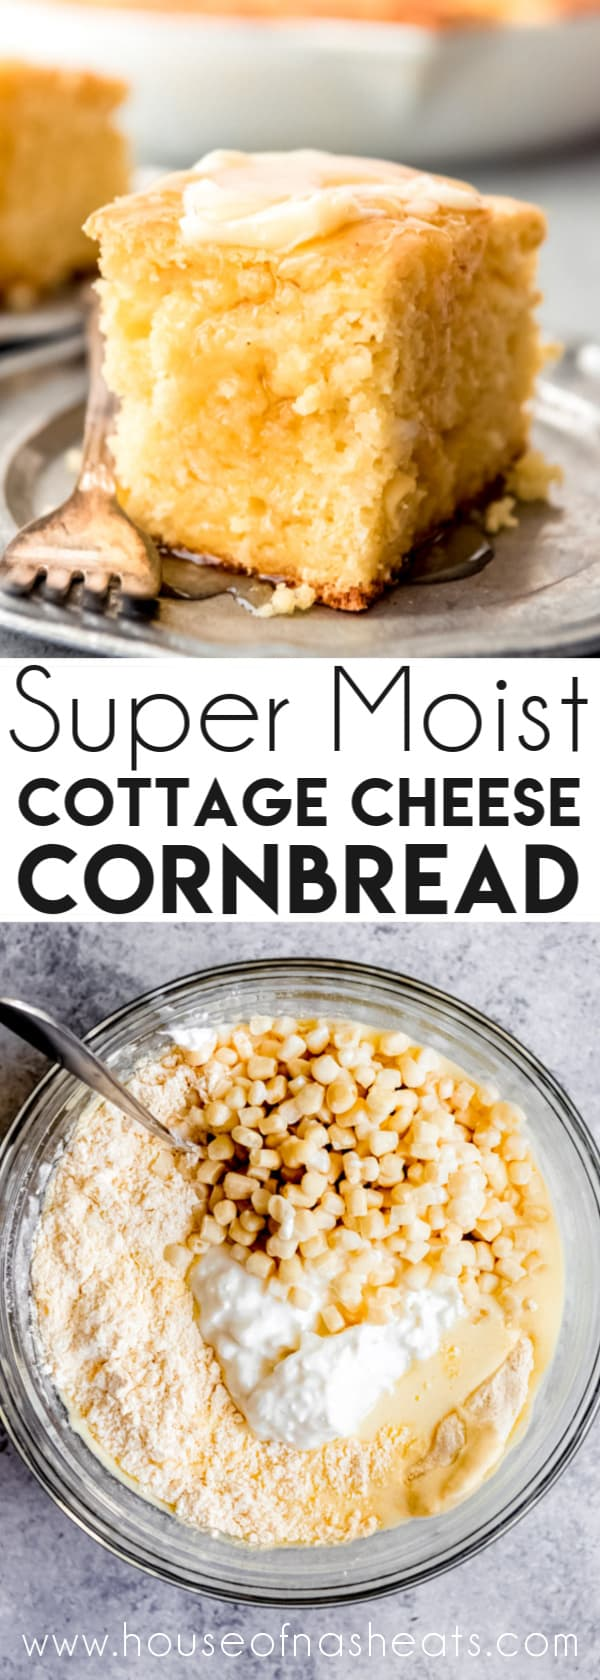 There Is A Not So Secret Ingredient To This Cottage Cheese Cornbread Recipe That Sets It Apart F In 2020 Cottage Cheese Recipes Best Cornbread Recipe Best Bread Recipe